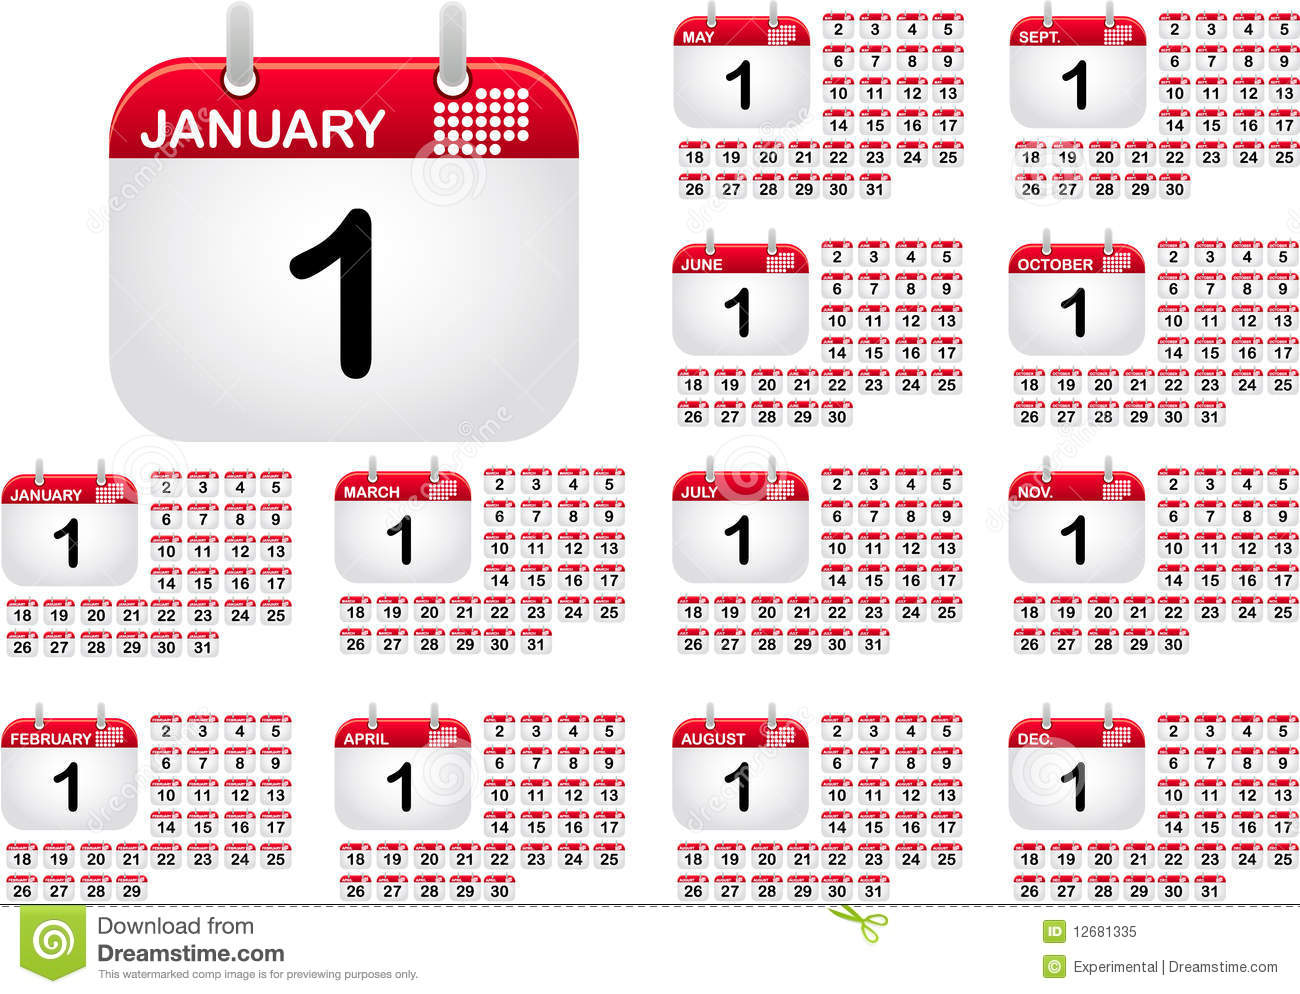 Met Art Calendar : Calendar icons for all monthes of the year royalty free